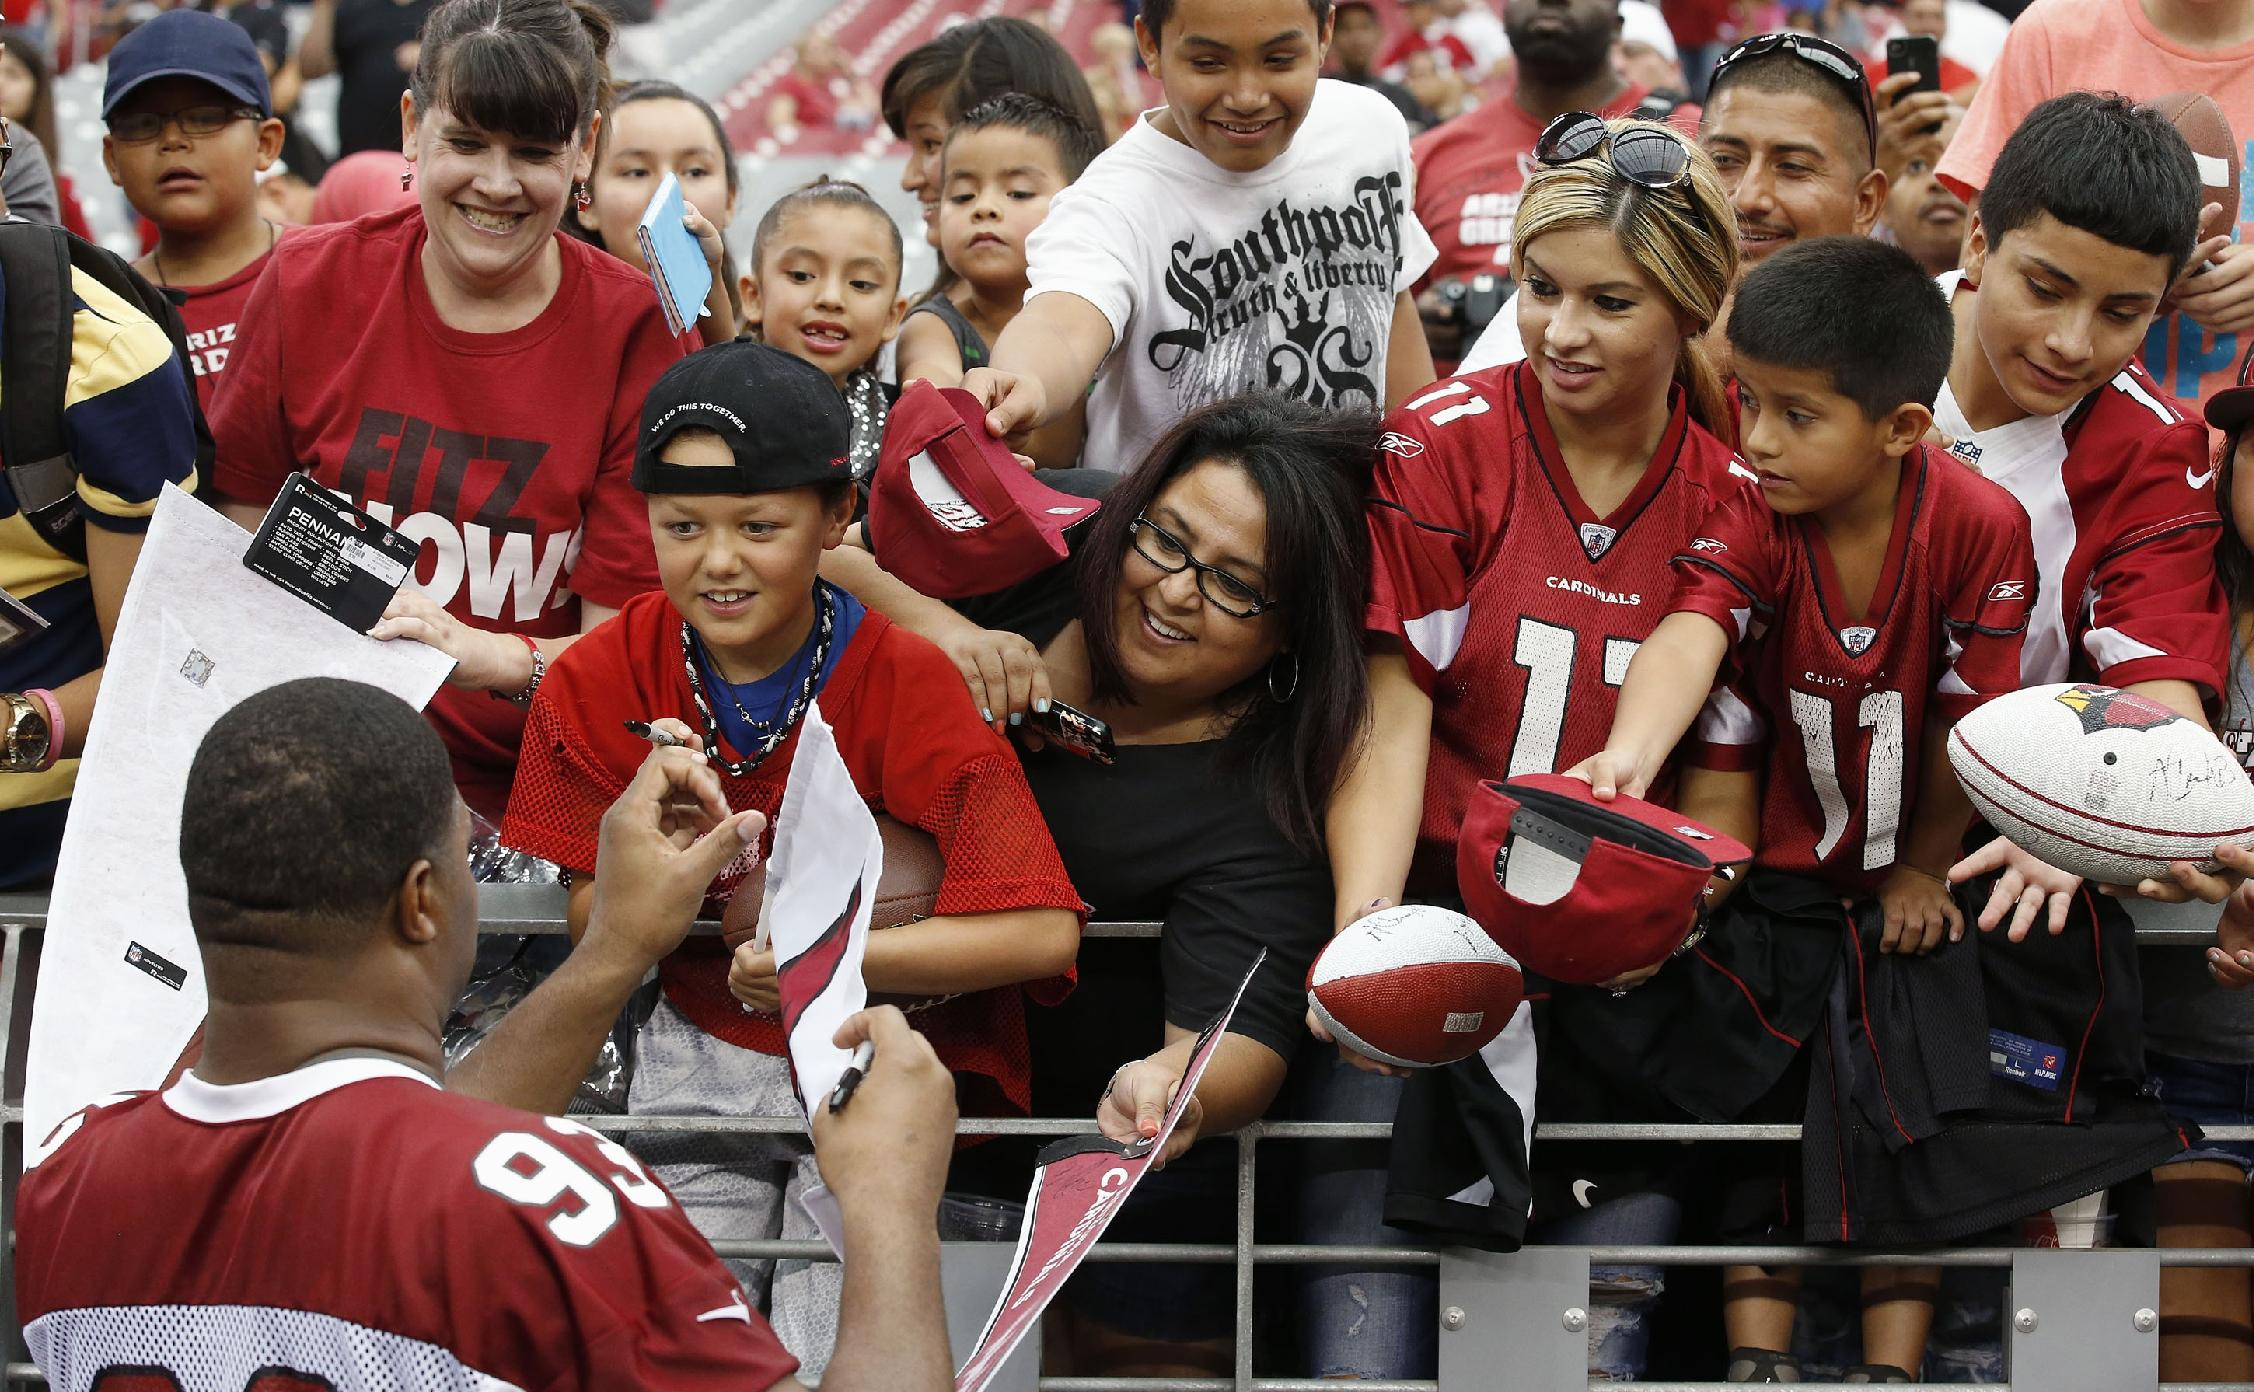 Arizona Cardinals' Calais Campbell, left, signs autographs for fans after the first day of the NFL football team's training camp Saturday, July 26, 2014, in Glendale, Ariz